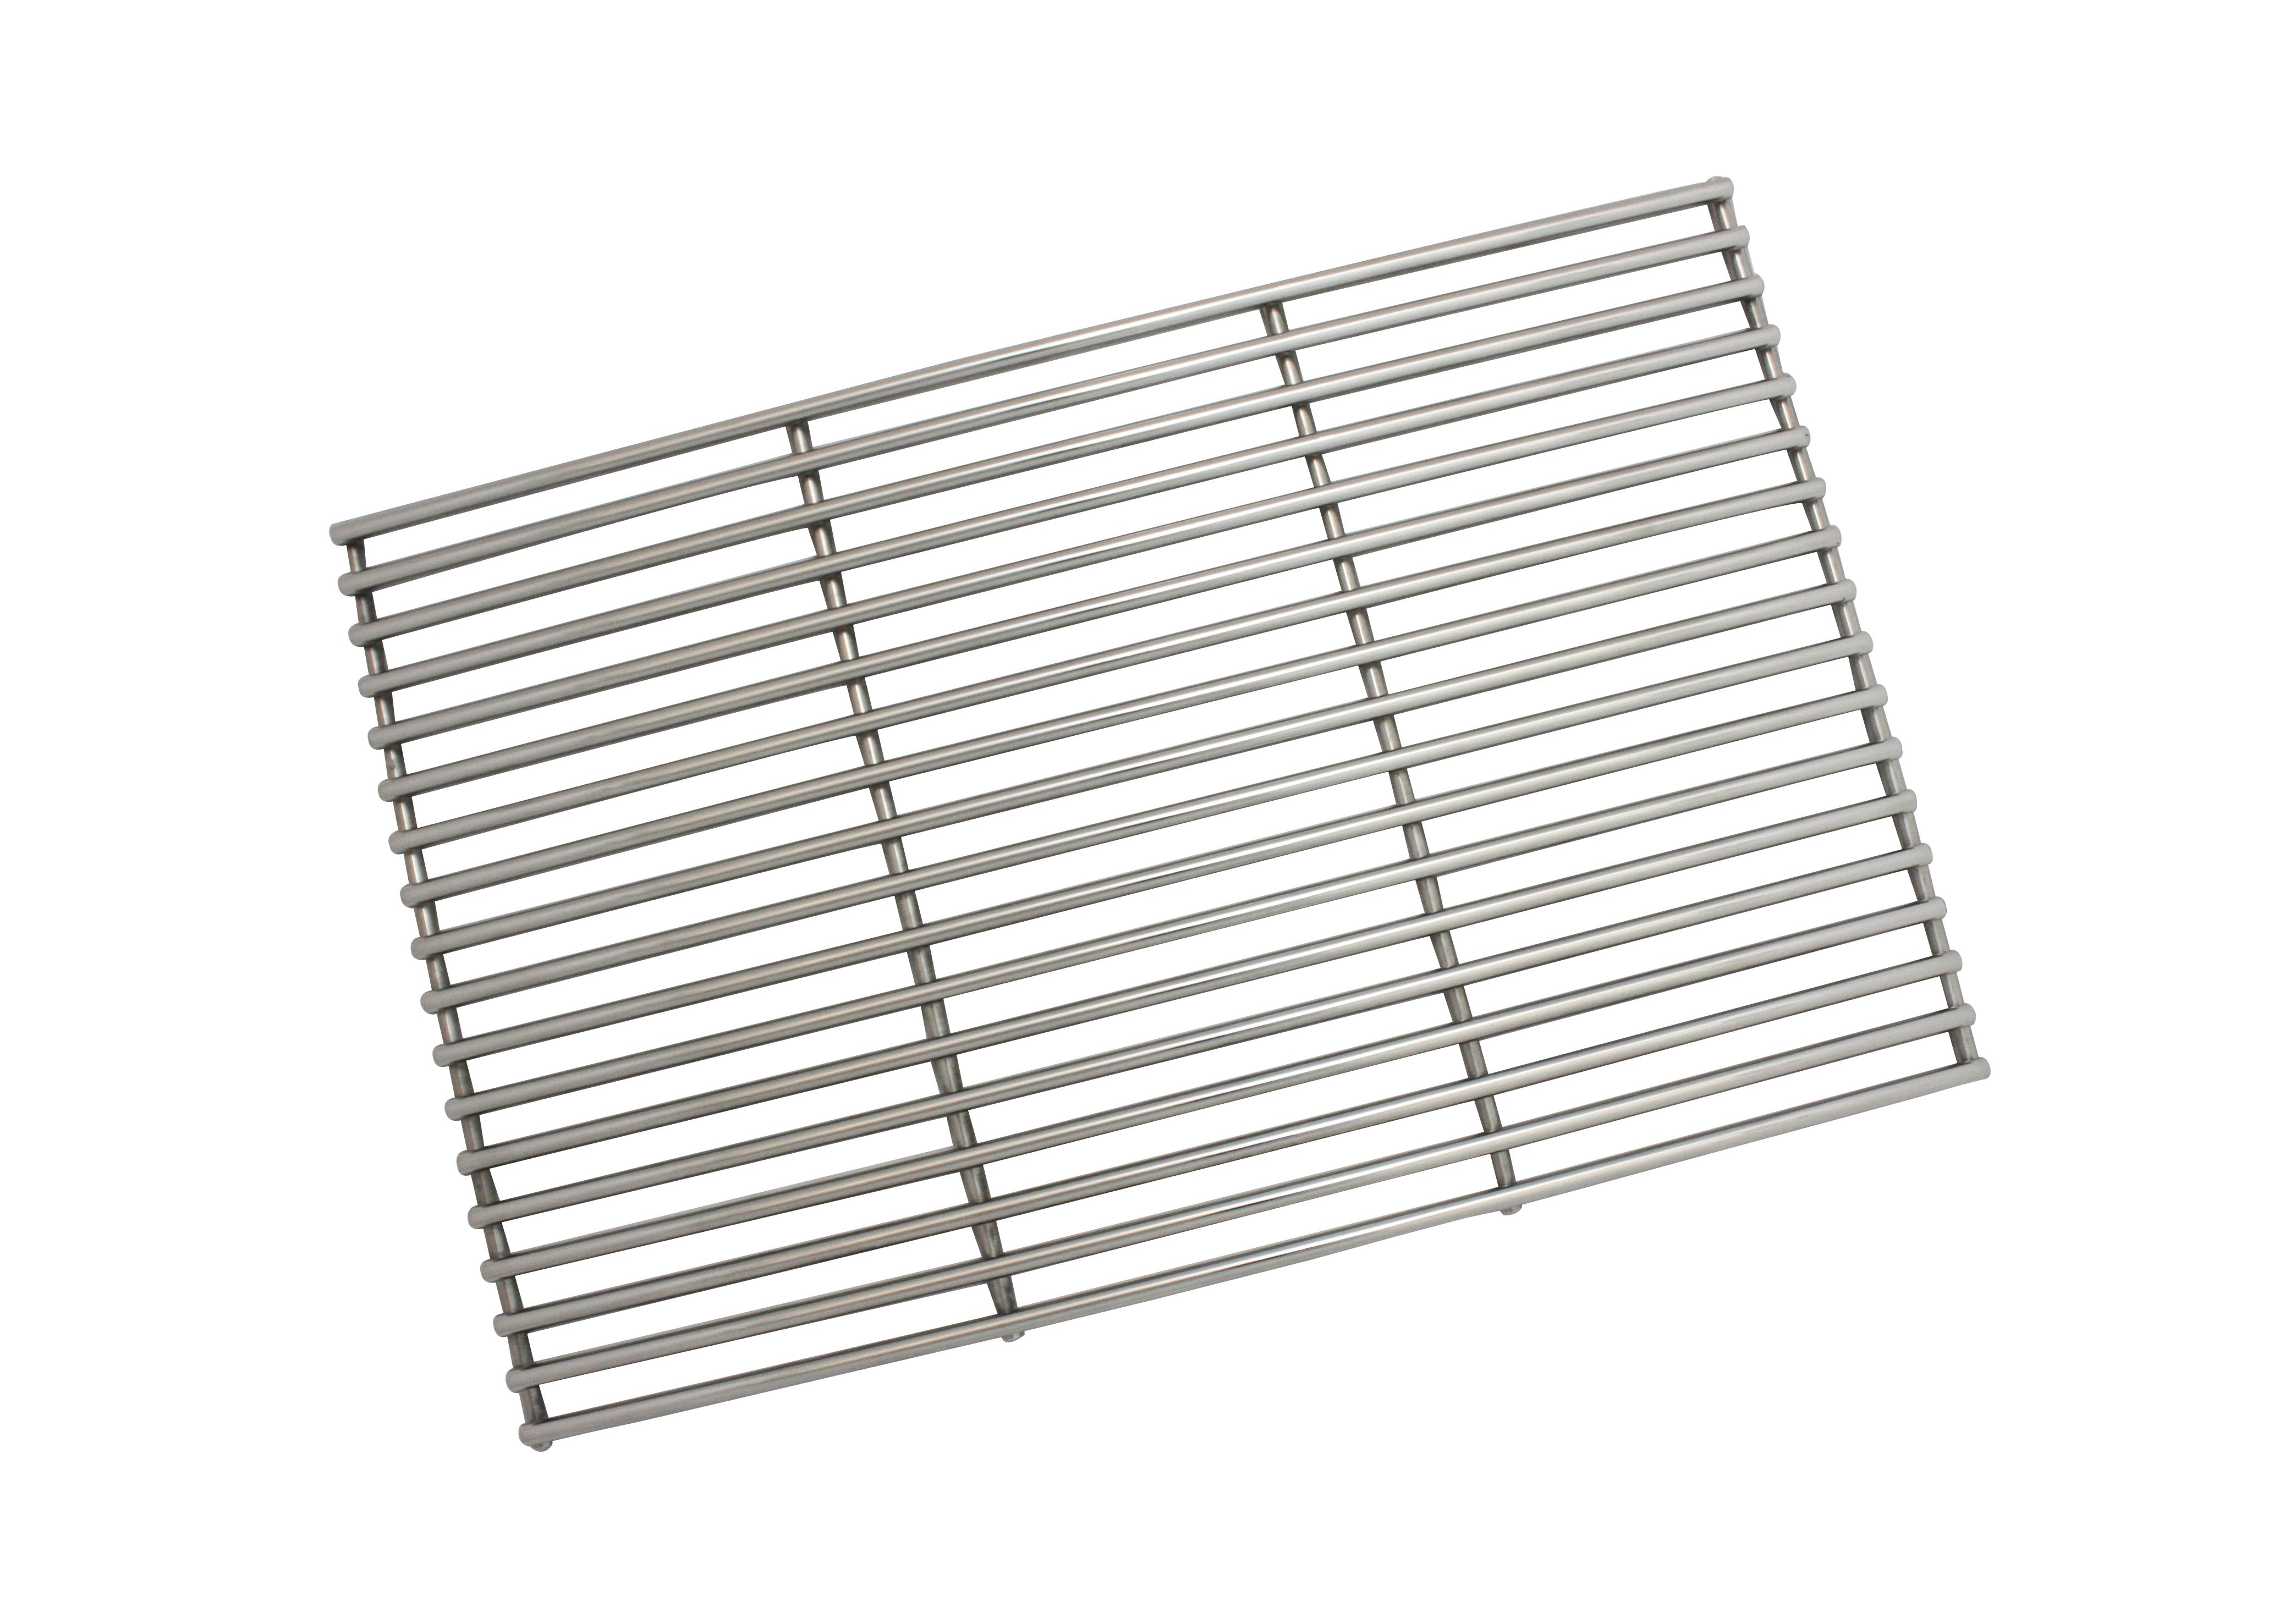 3mm stainless steel bbq grill